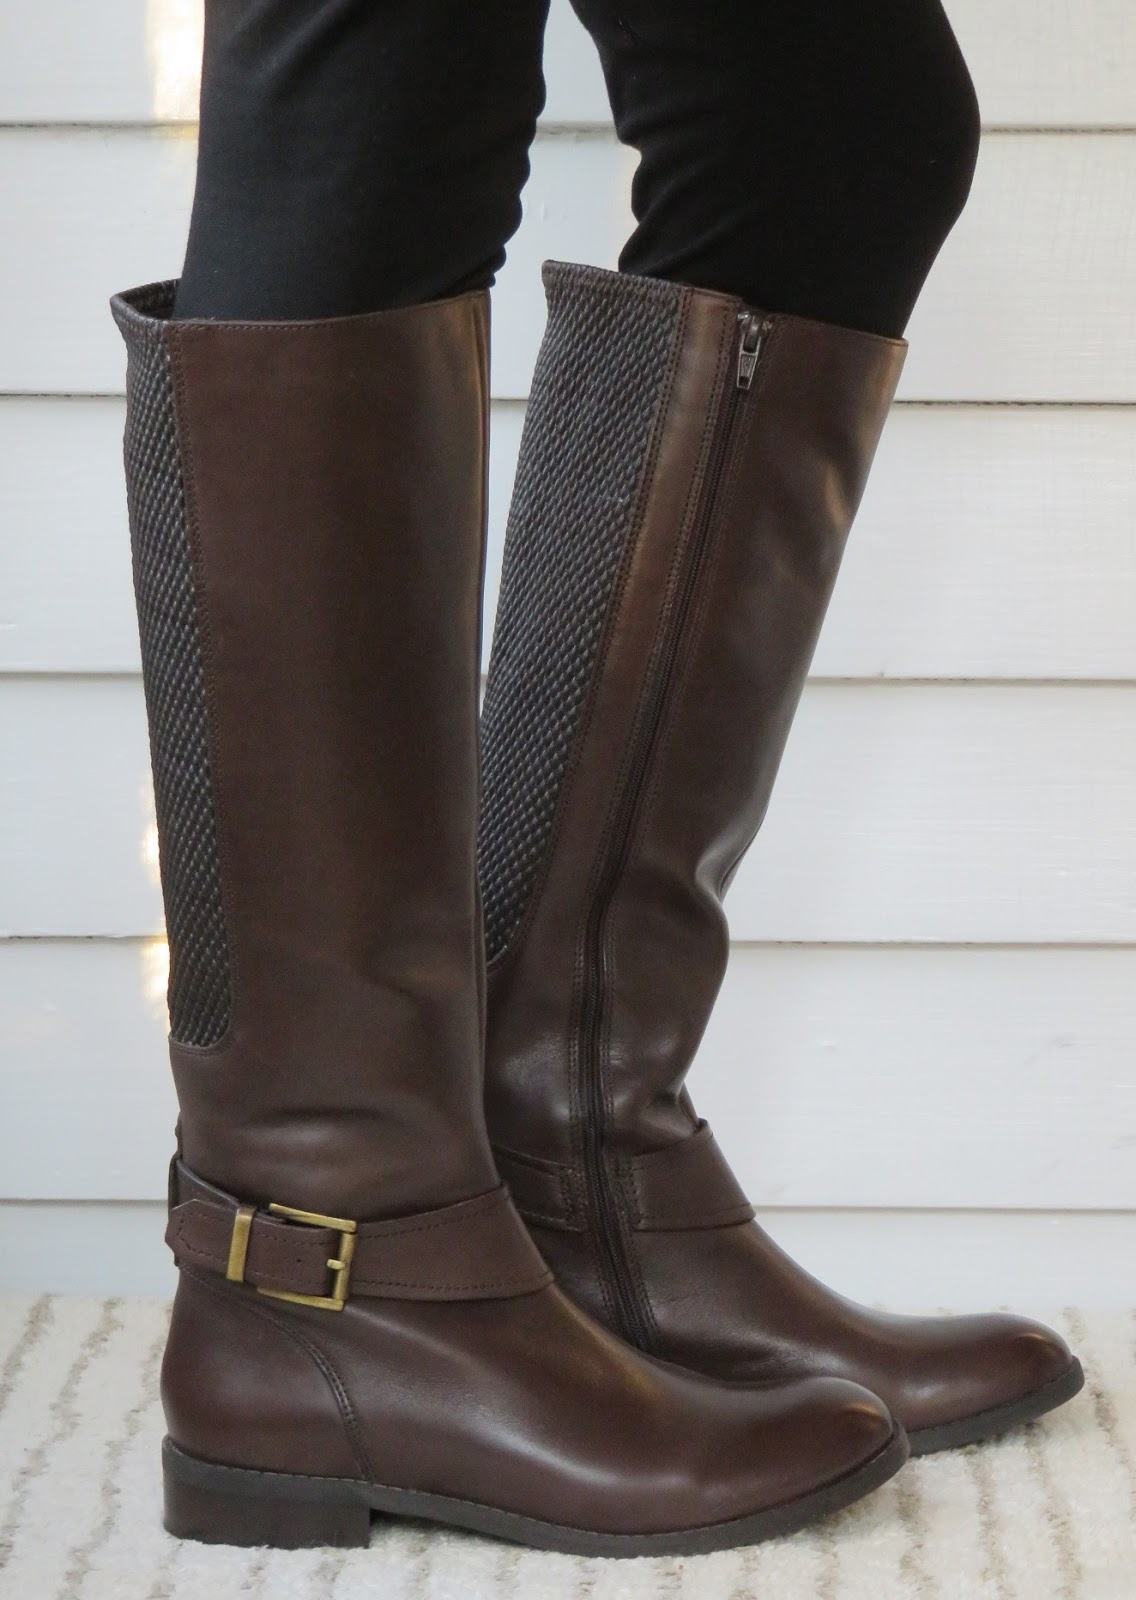 clarks wide calf boots canada